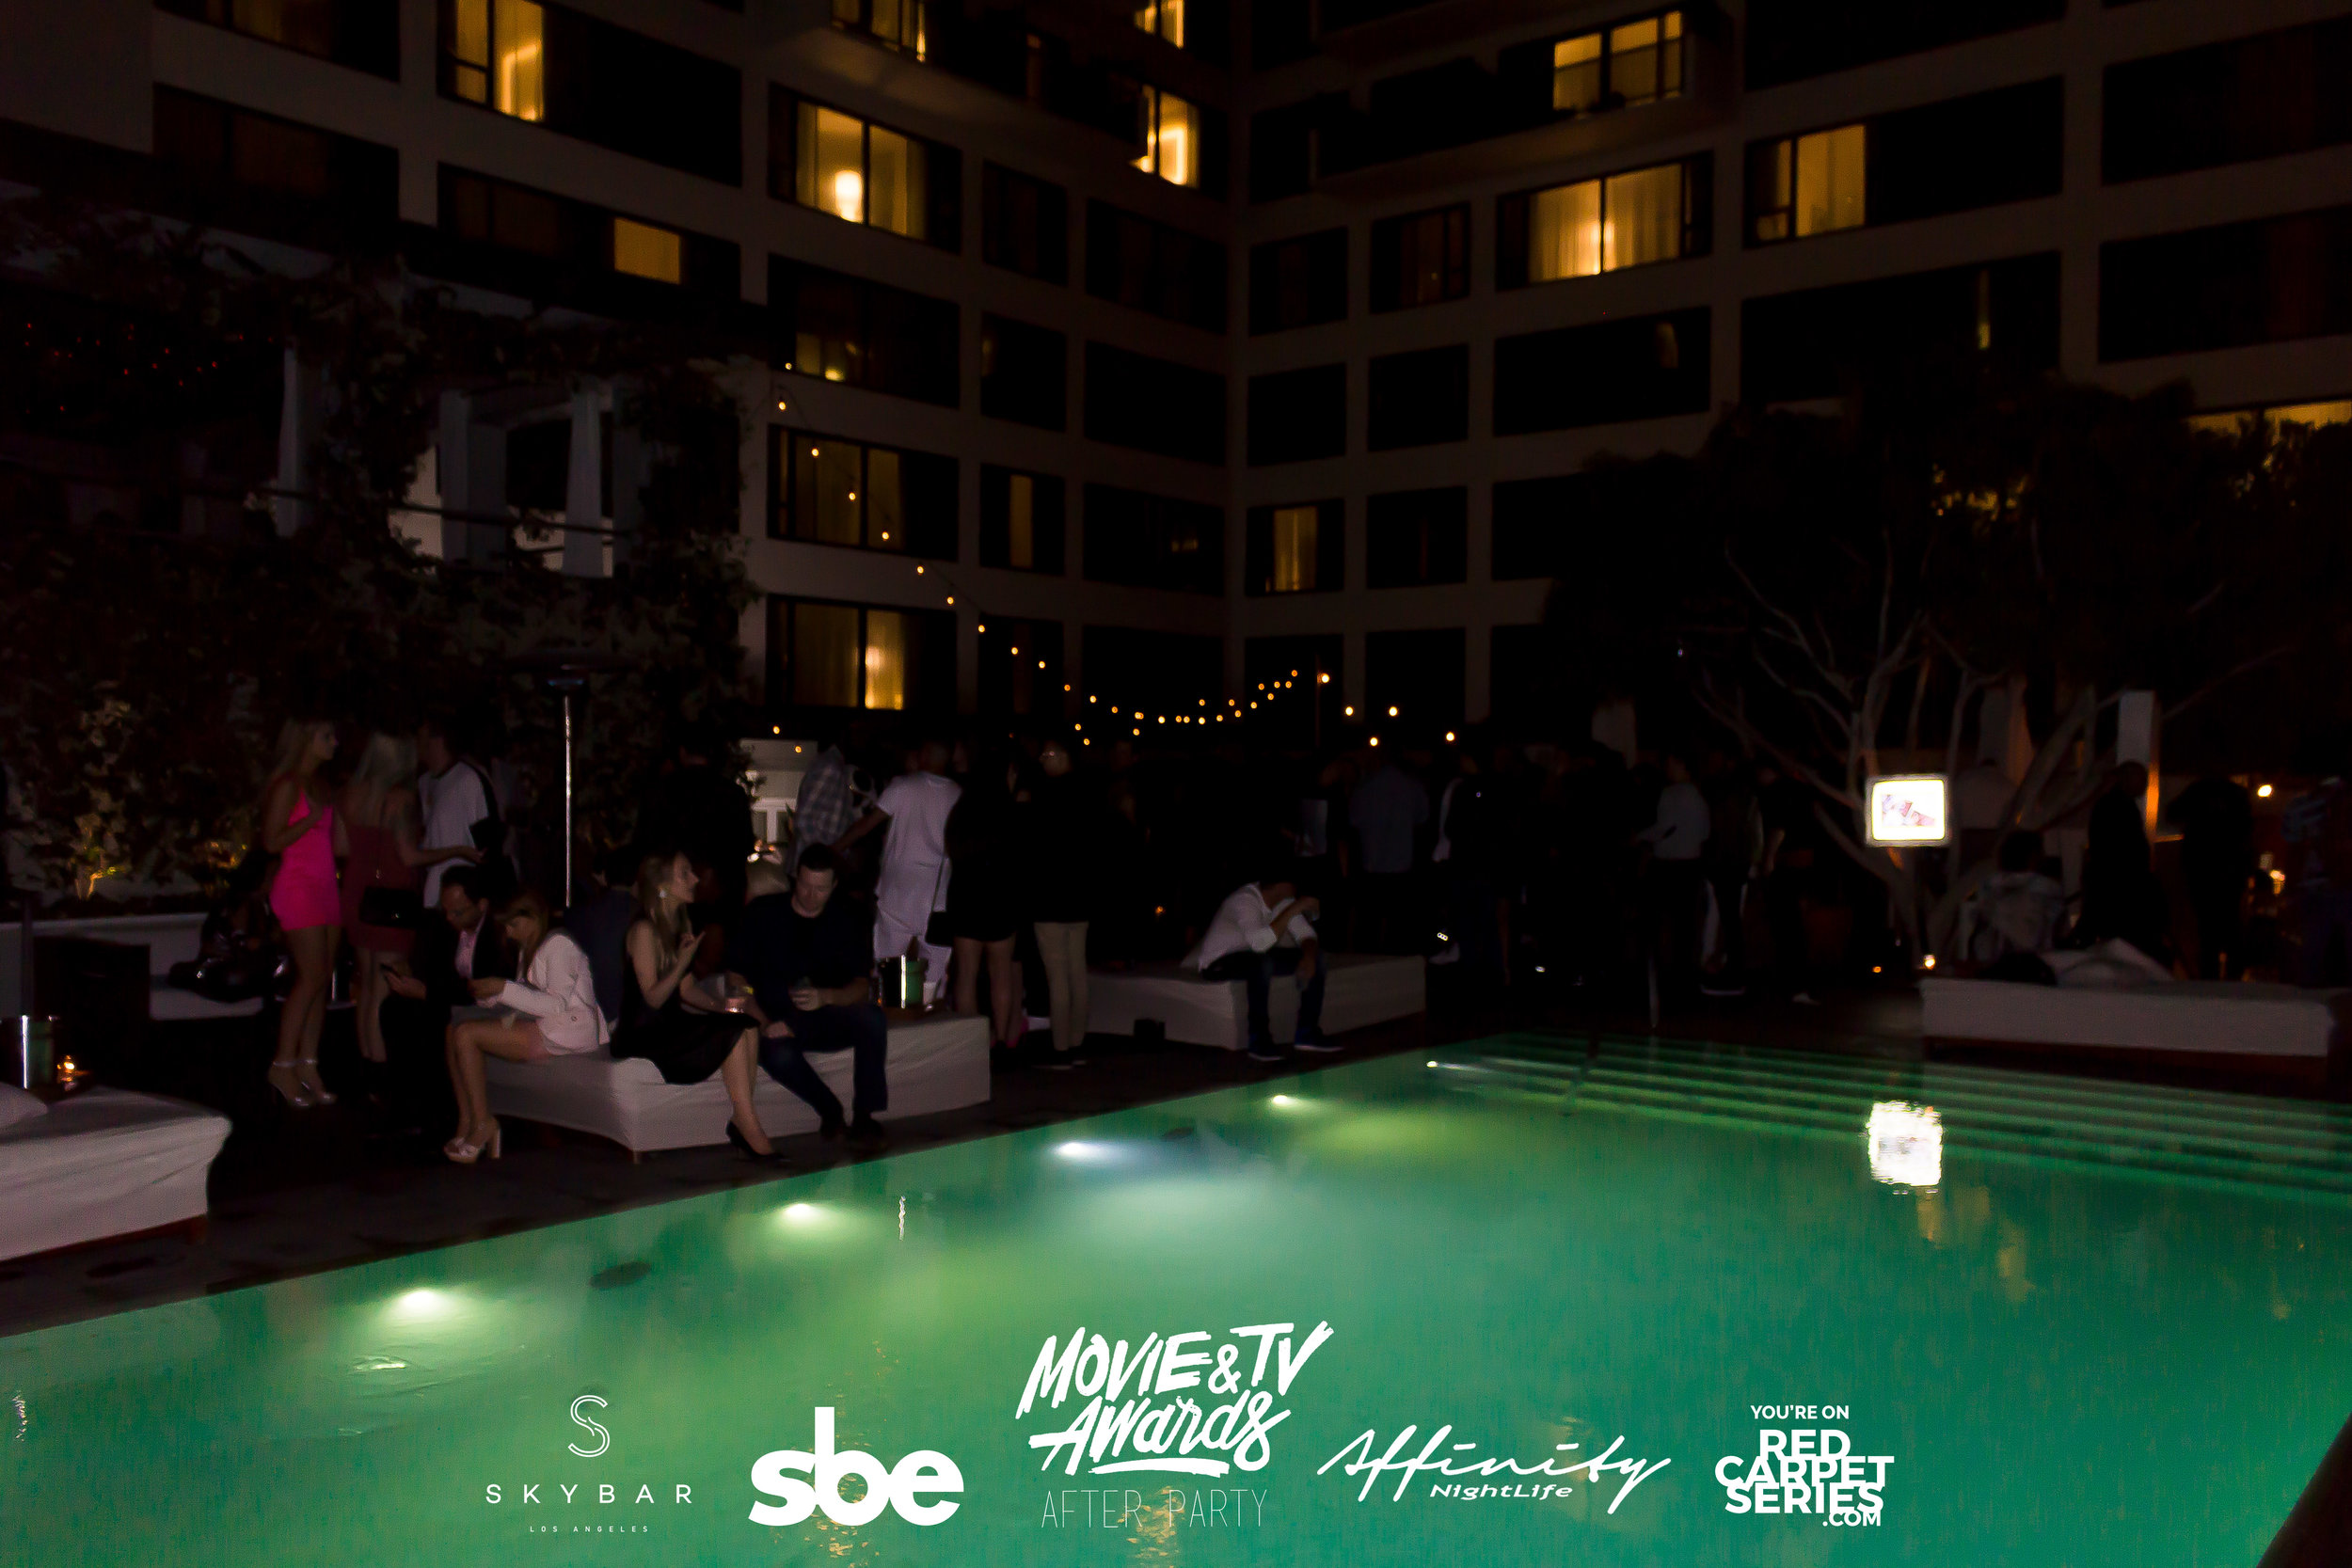 Affinity Nightlife MTV Movie & TV Awards After Party - Skybar at Mondrian - 06-15-19 - Vol. 2_142.jpg